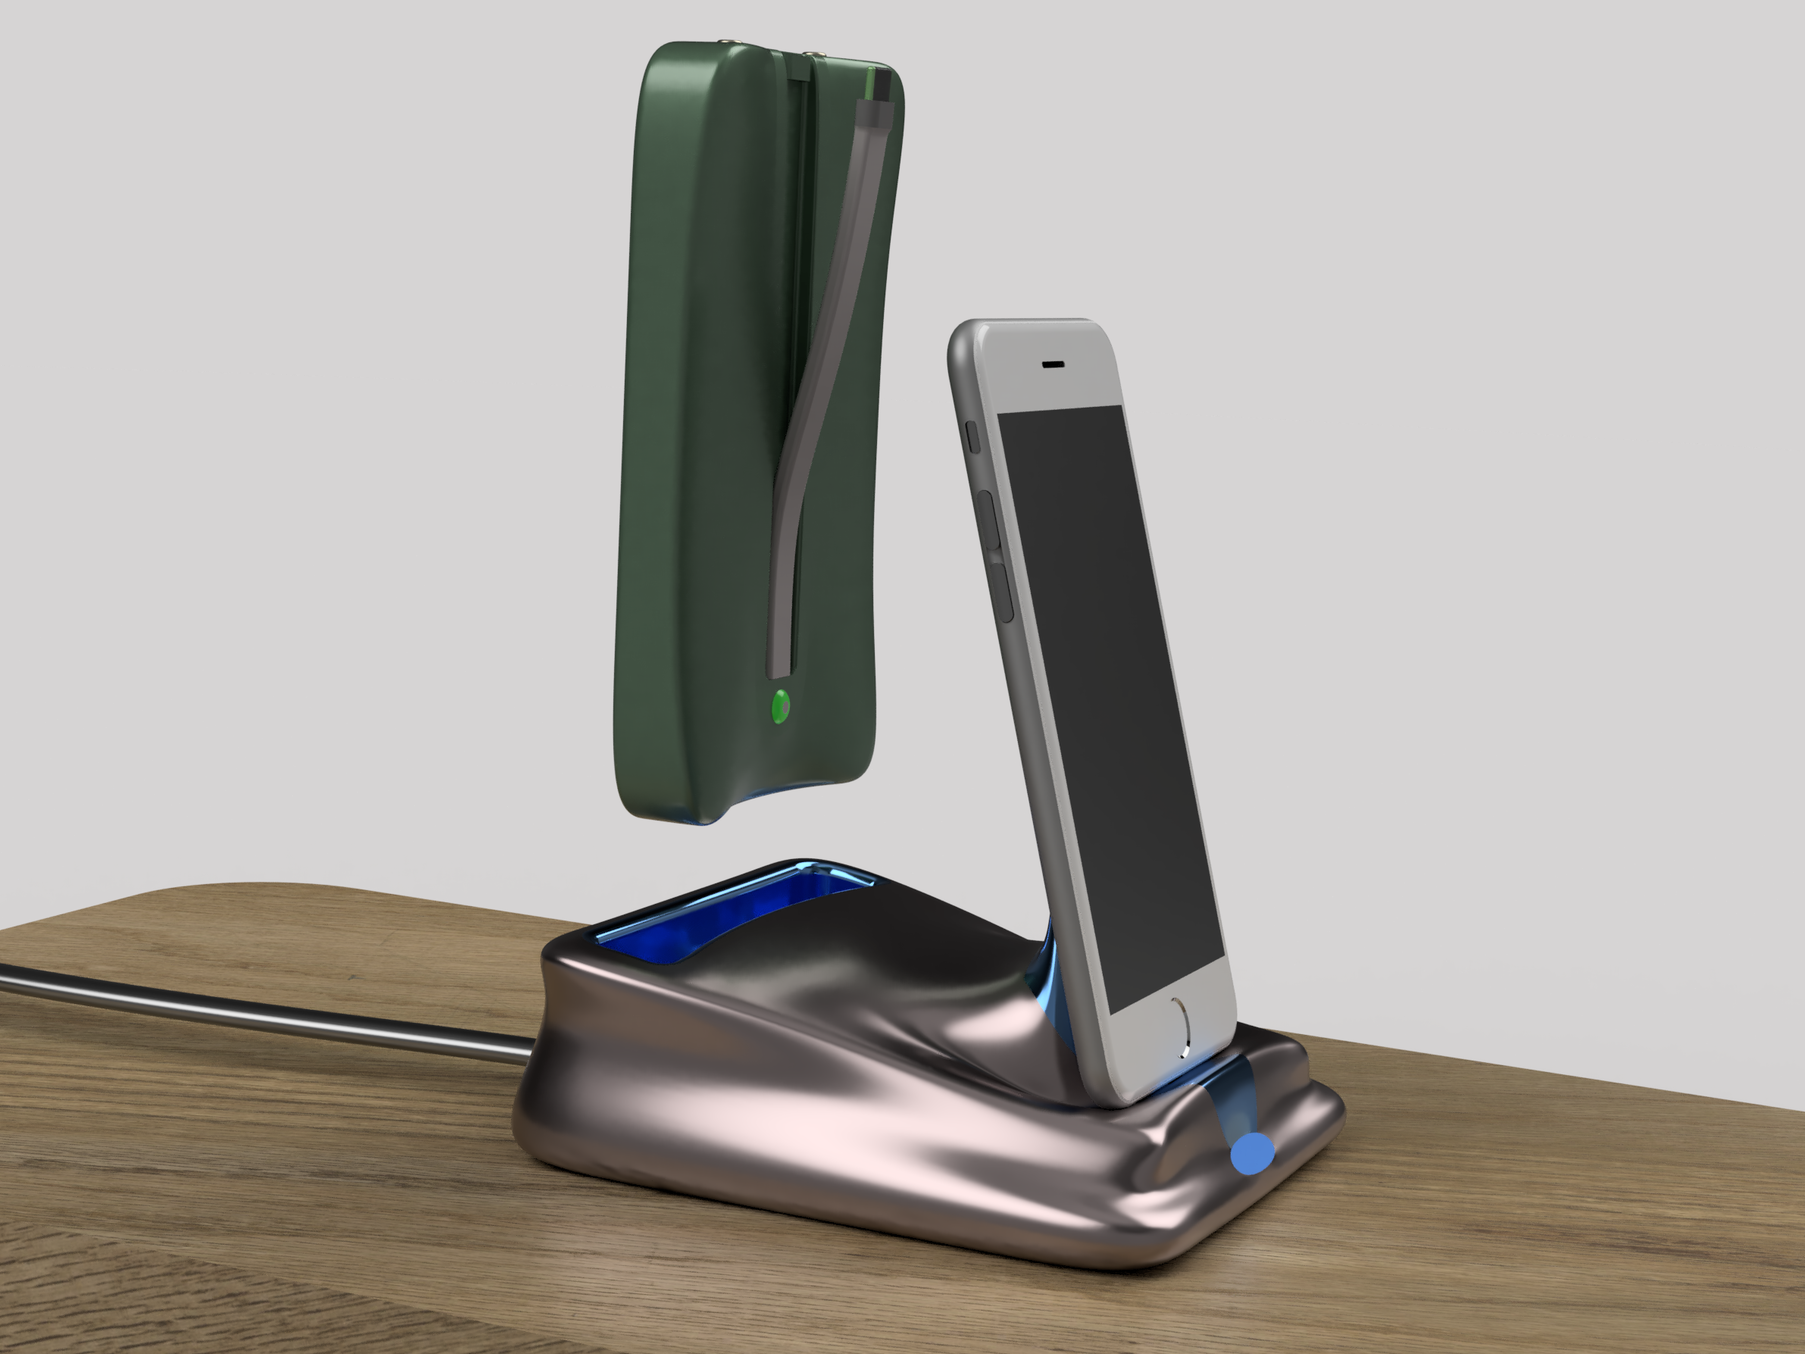 Phone charger with removable portable USB power bank